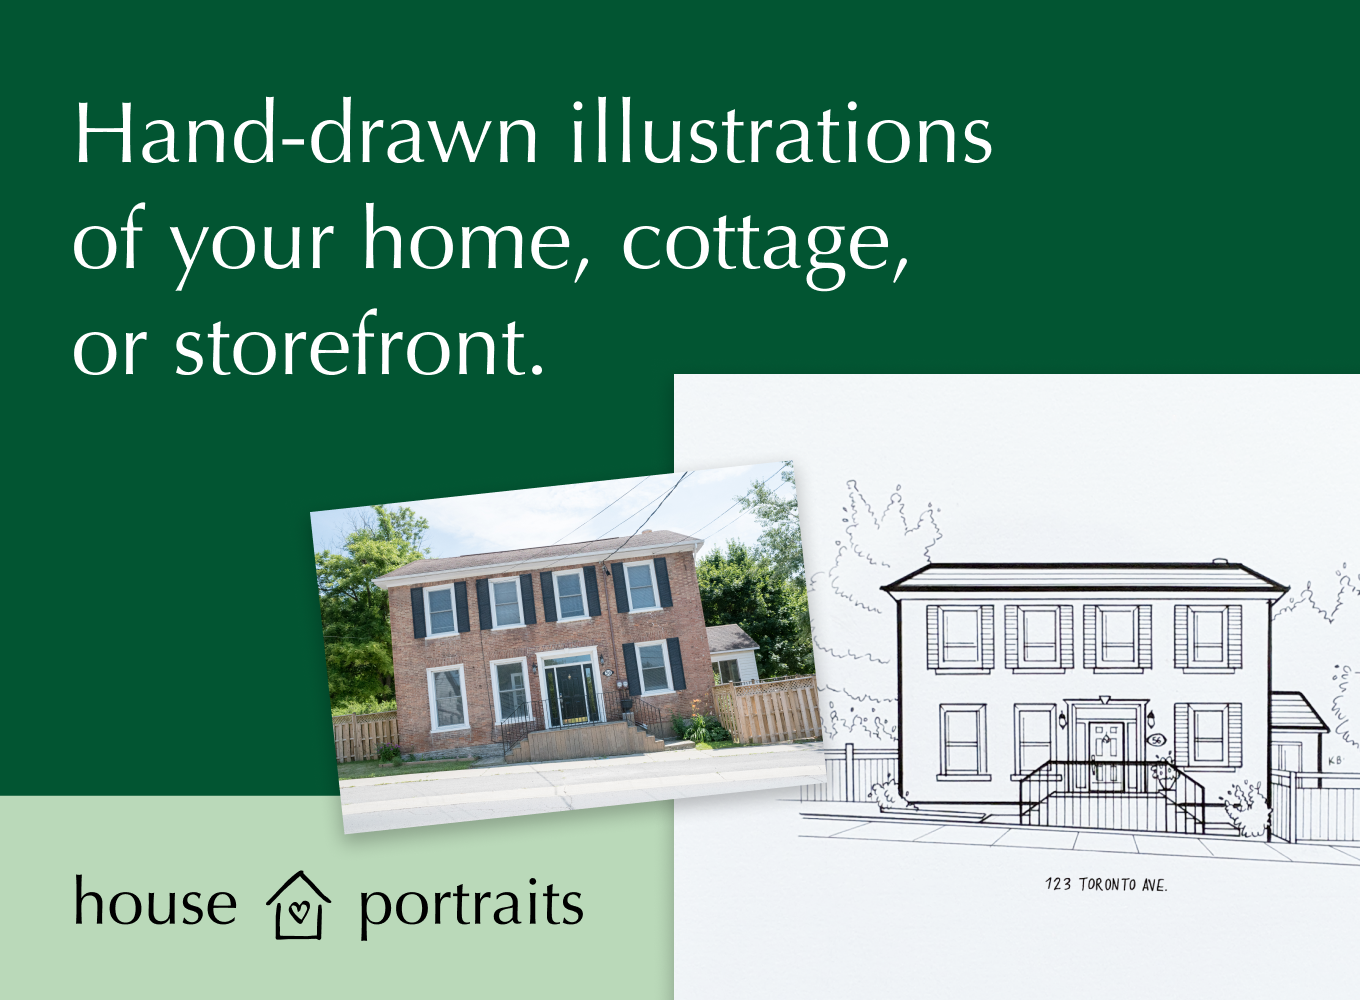 Ad for houseportraits.shop site to commission custom artwork of your home, cottage or storefront.